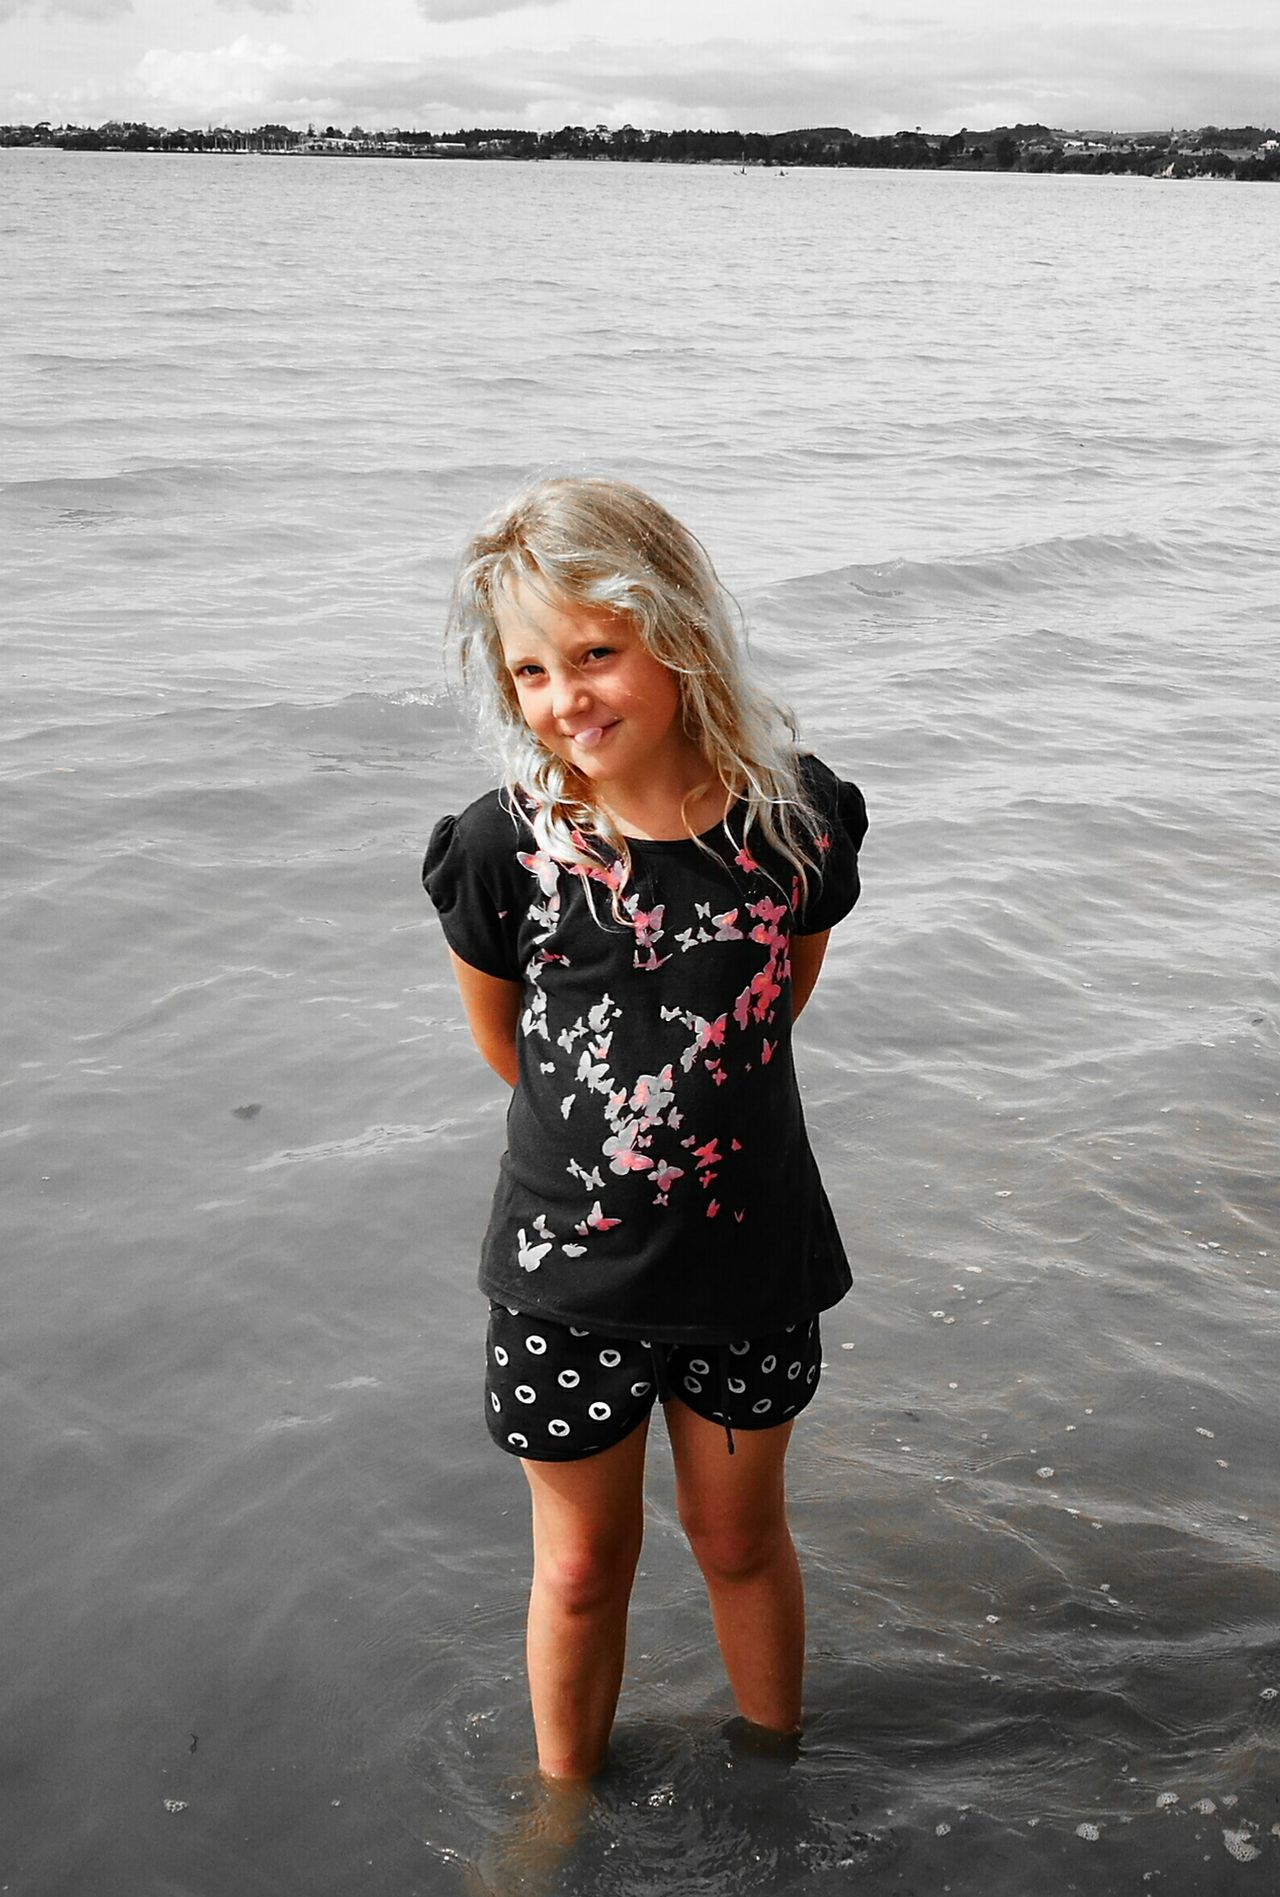 Water beach Blond Hair Sea One Girl Only Beauty Children Only One Person People Nature Day Outdoors Freshness